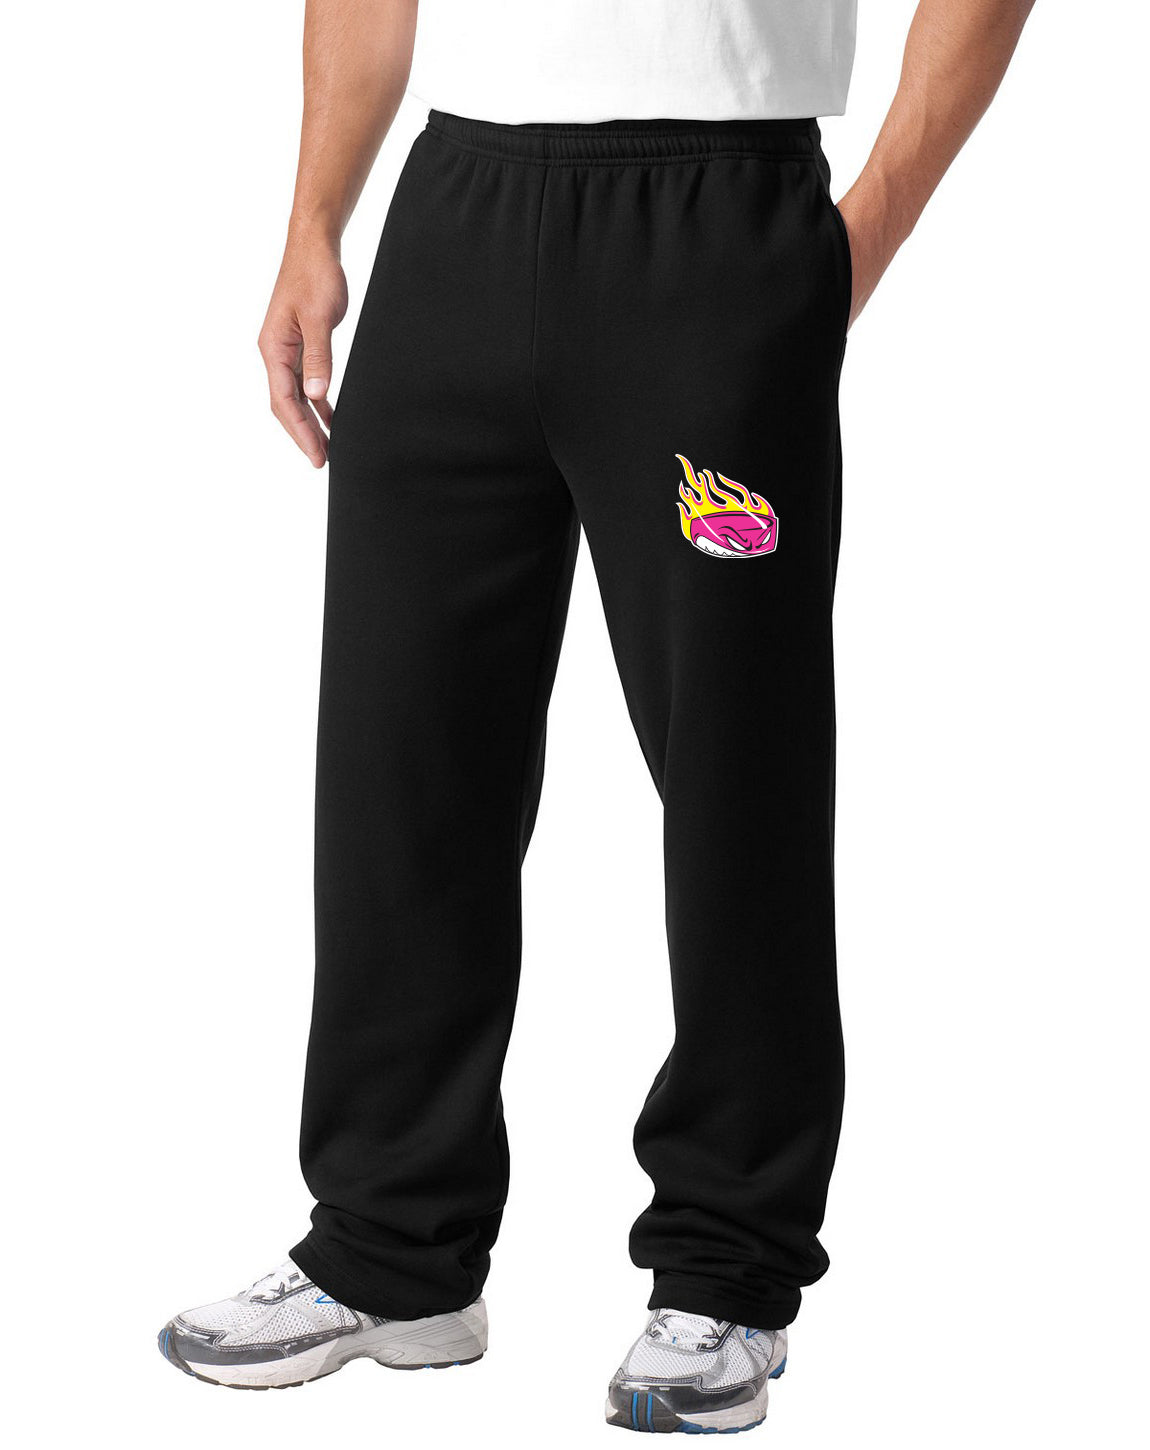 C2 ) STYLE# ST257 ADULT SWEATPANTS & Y257 YOUTH SWEATPANTS ( PINK LOGO )